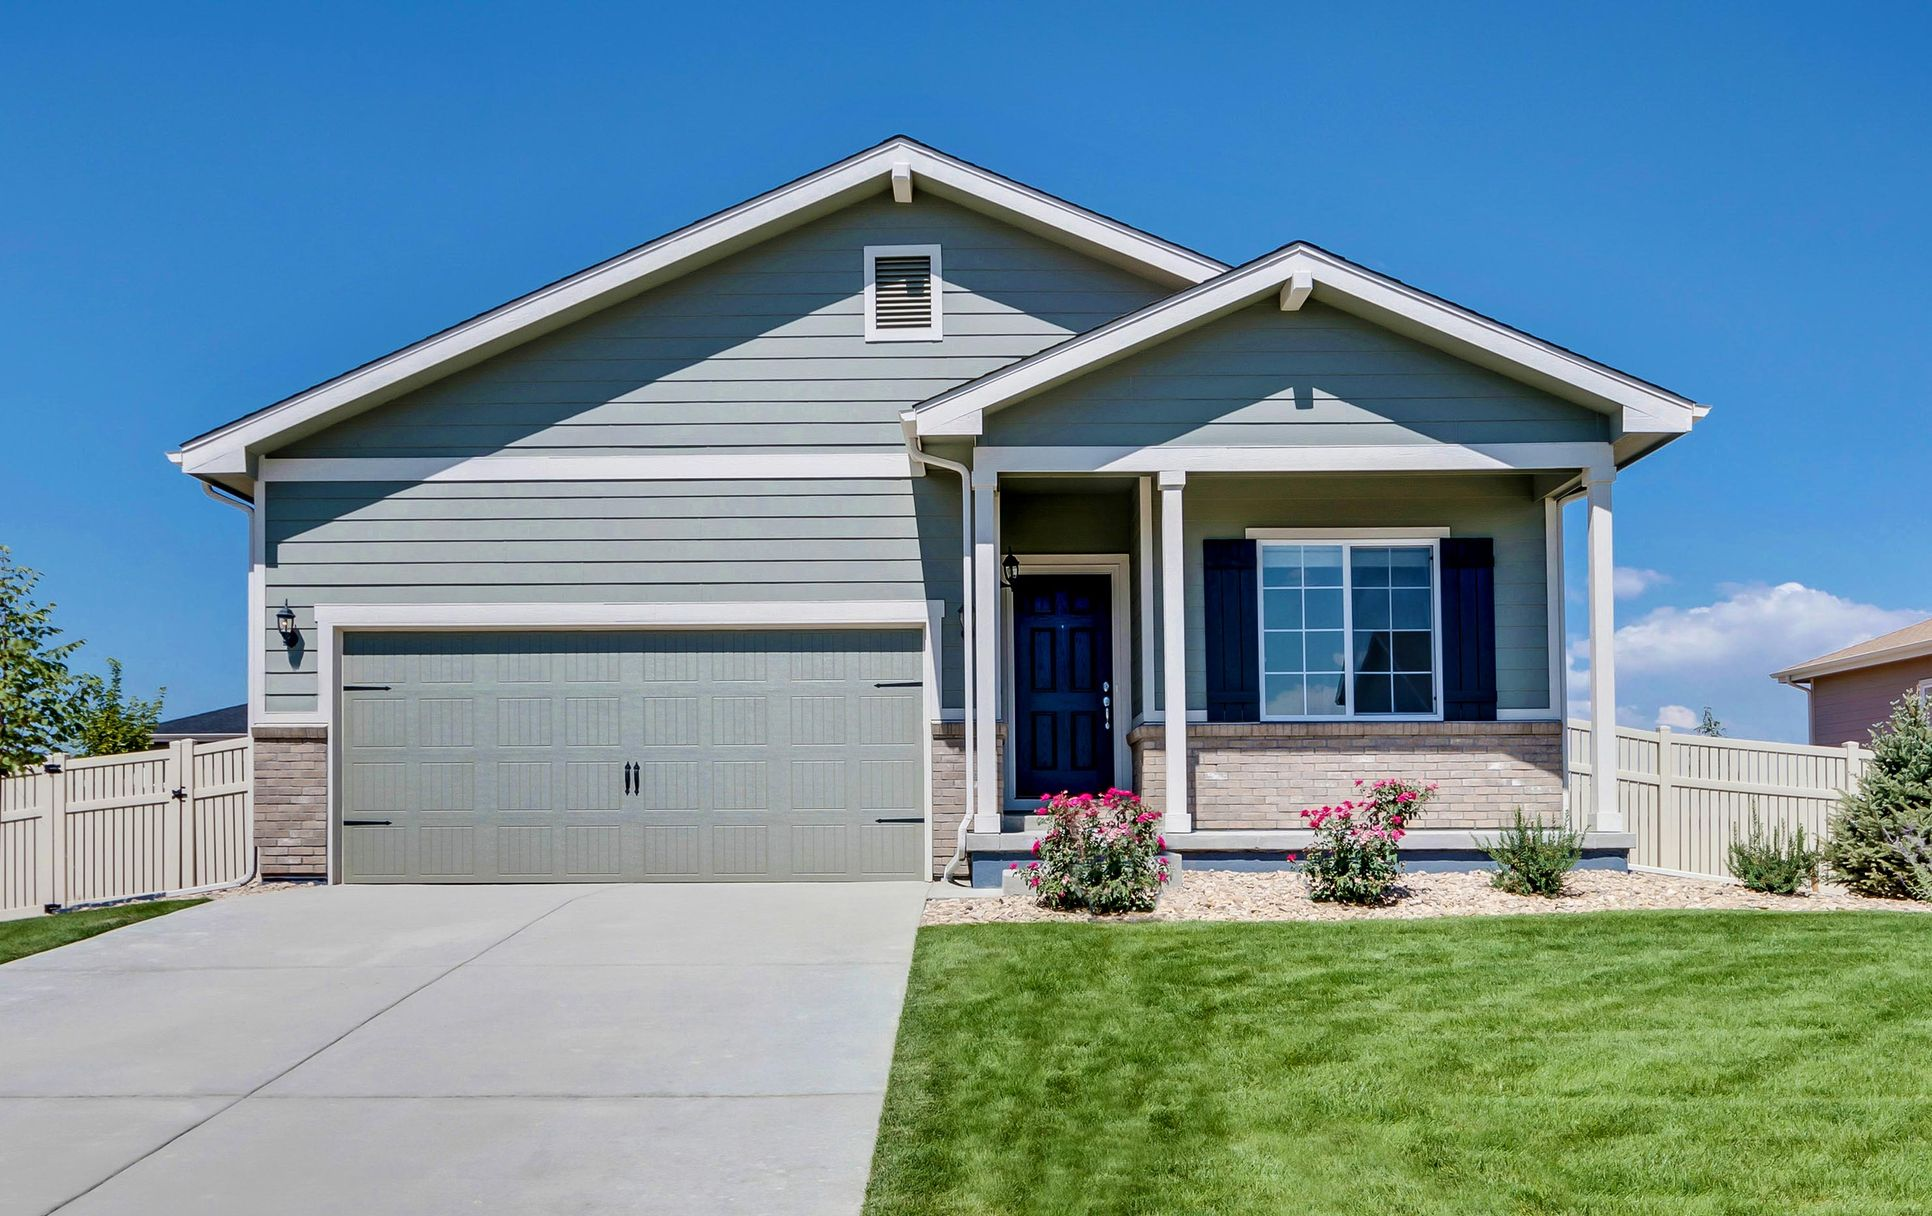 The Shavano by LGI Homes:3 bed/2 bath home available for quick move-in!